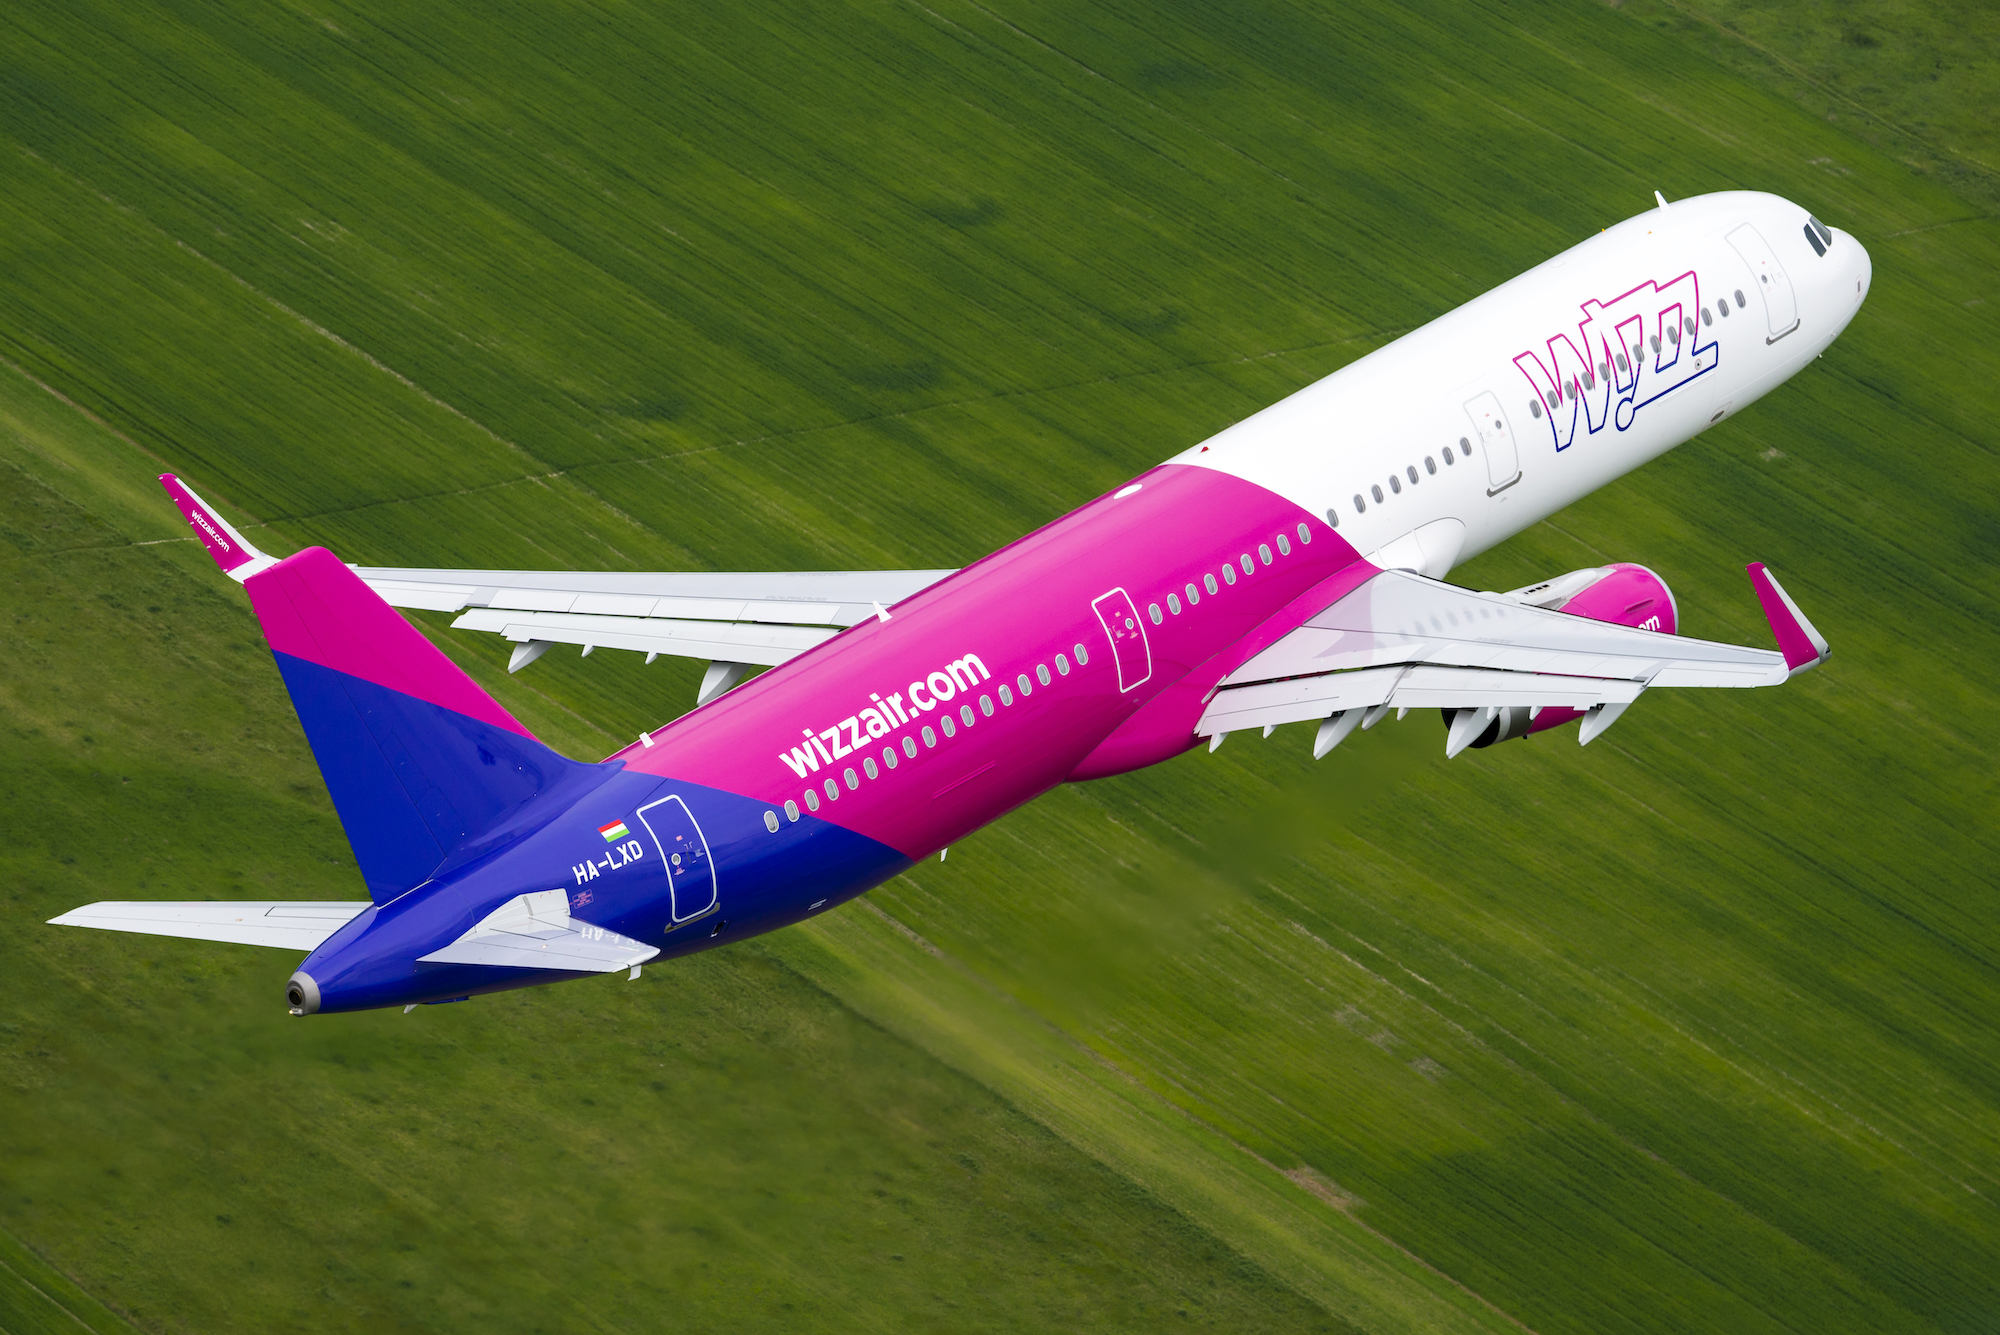 Wizz Air launches new routes connecting Abu Dhabi to Belgrade, Sohag and Luxor